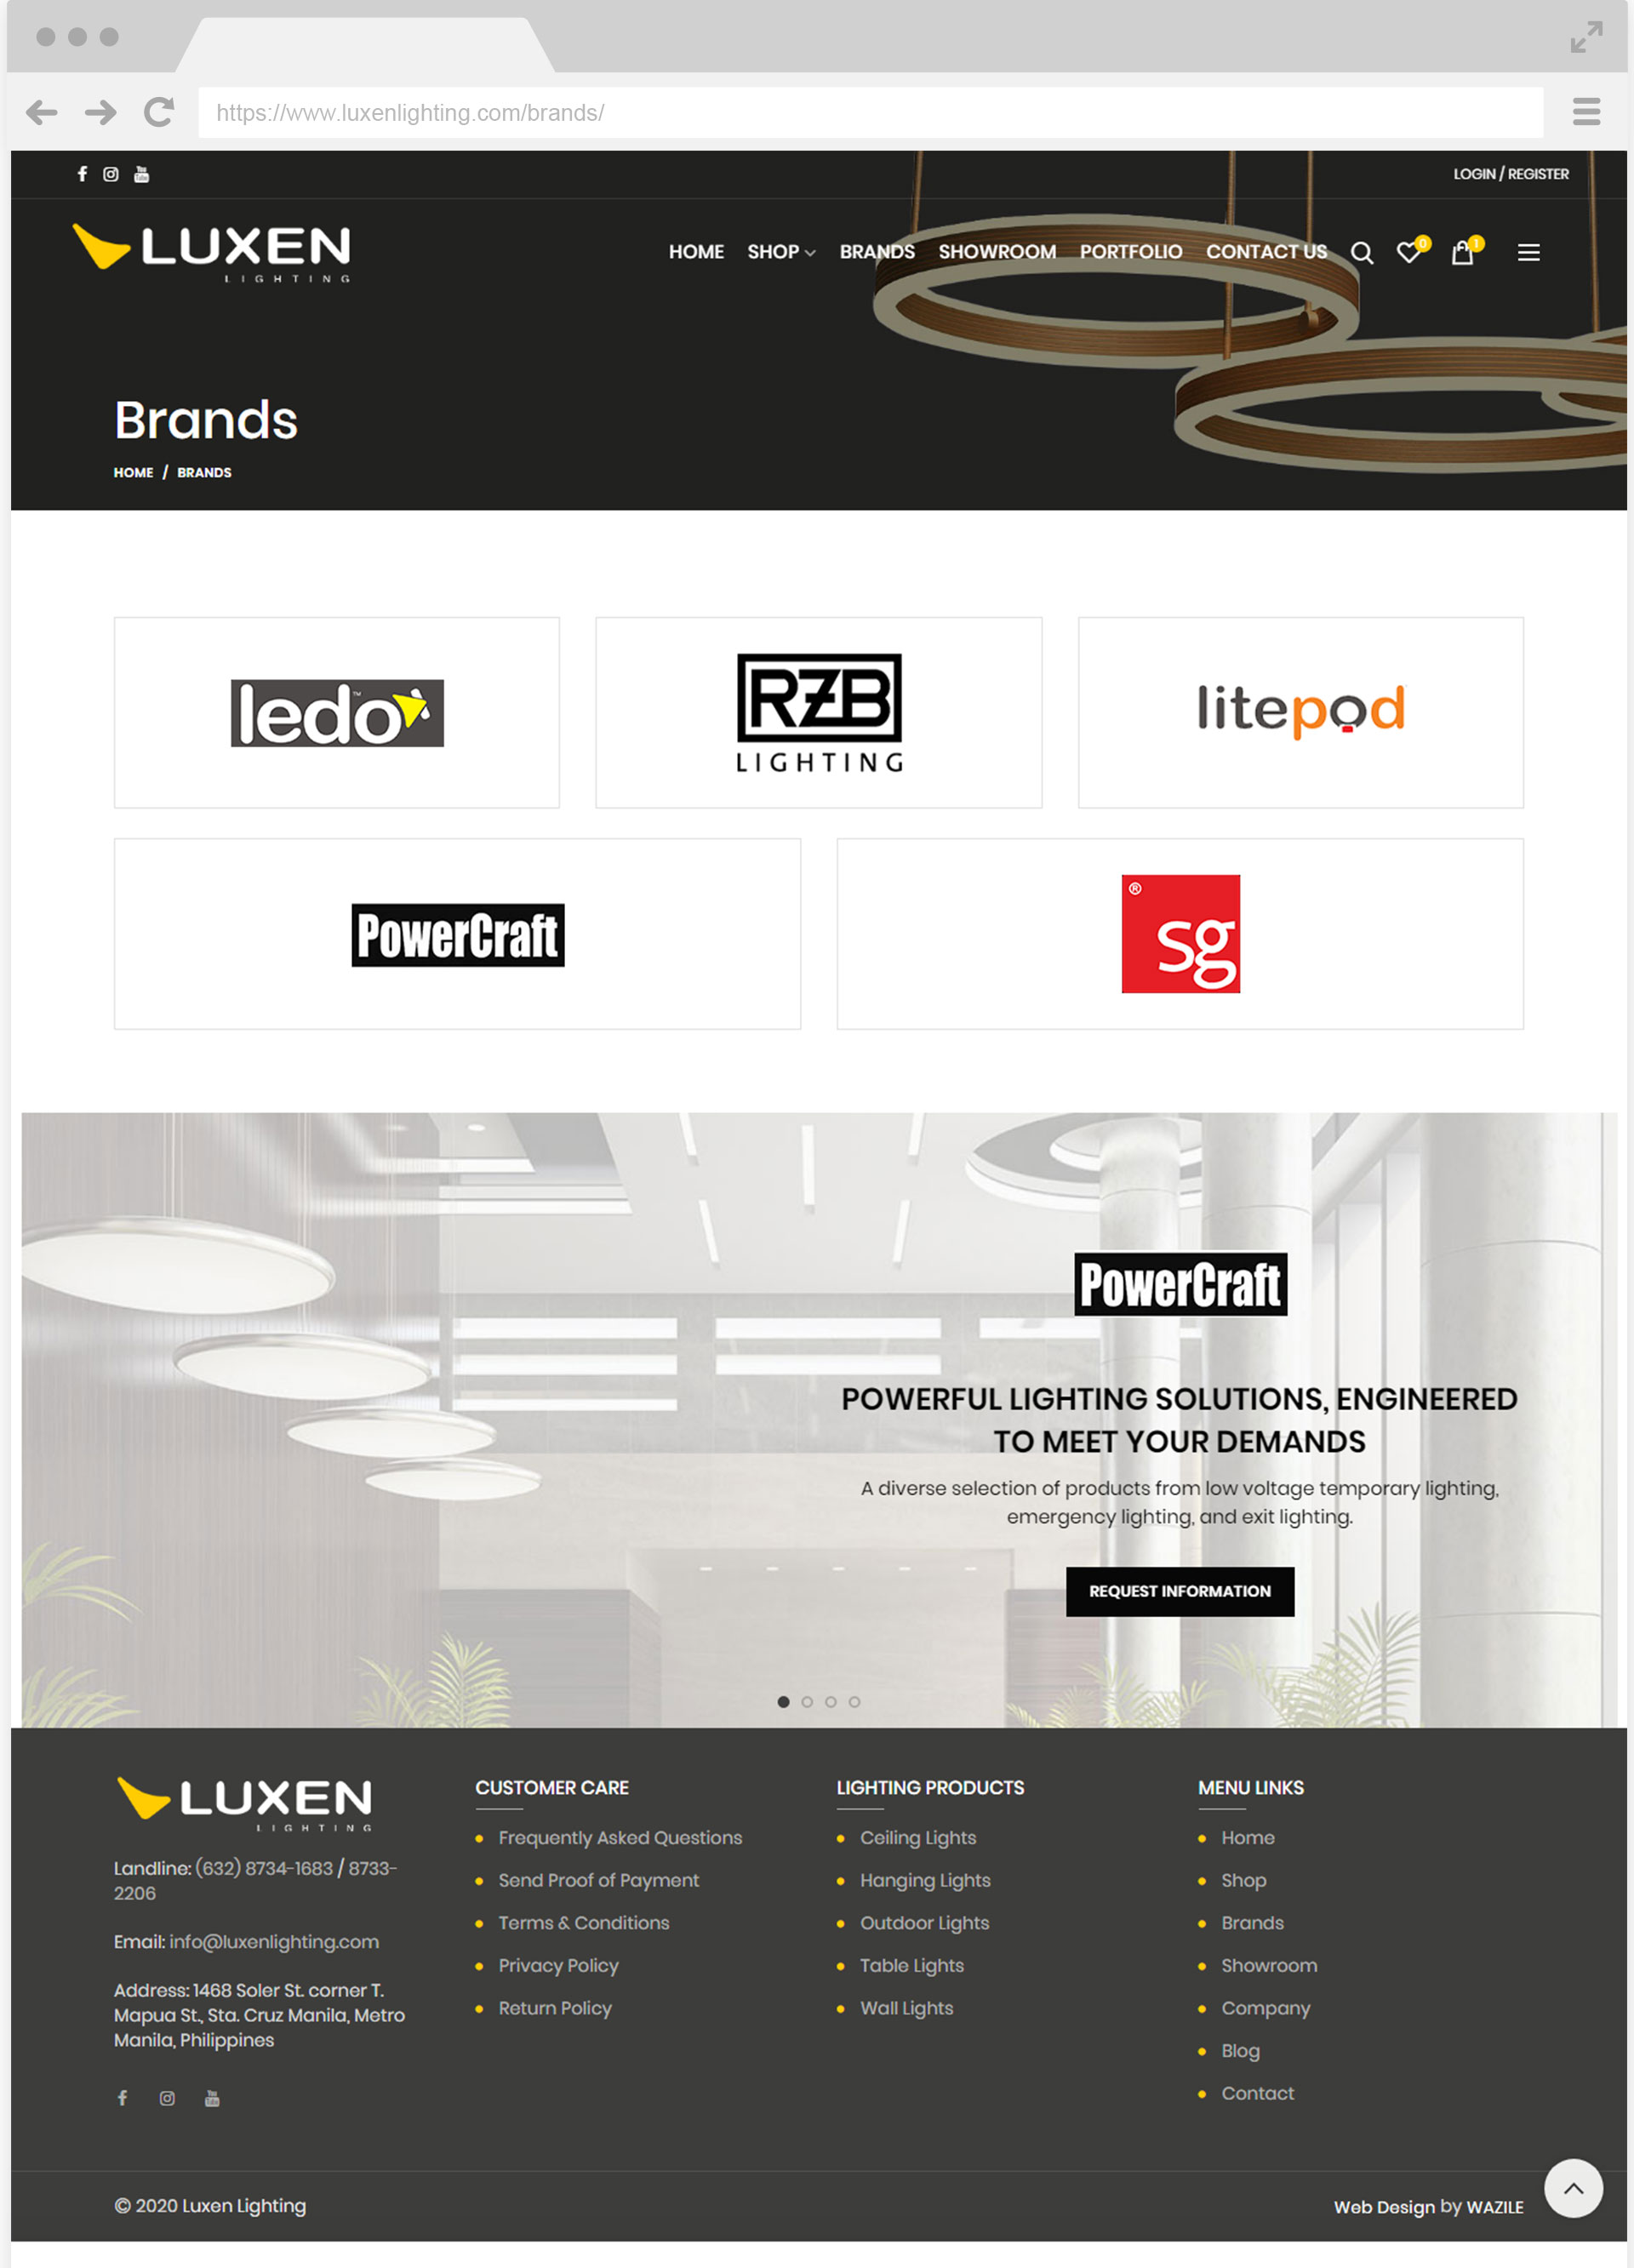 Luxen Lighting Brands